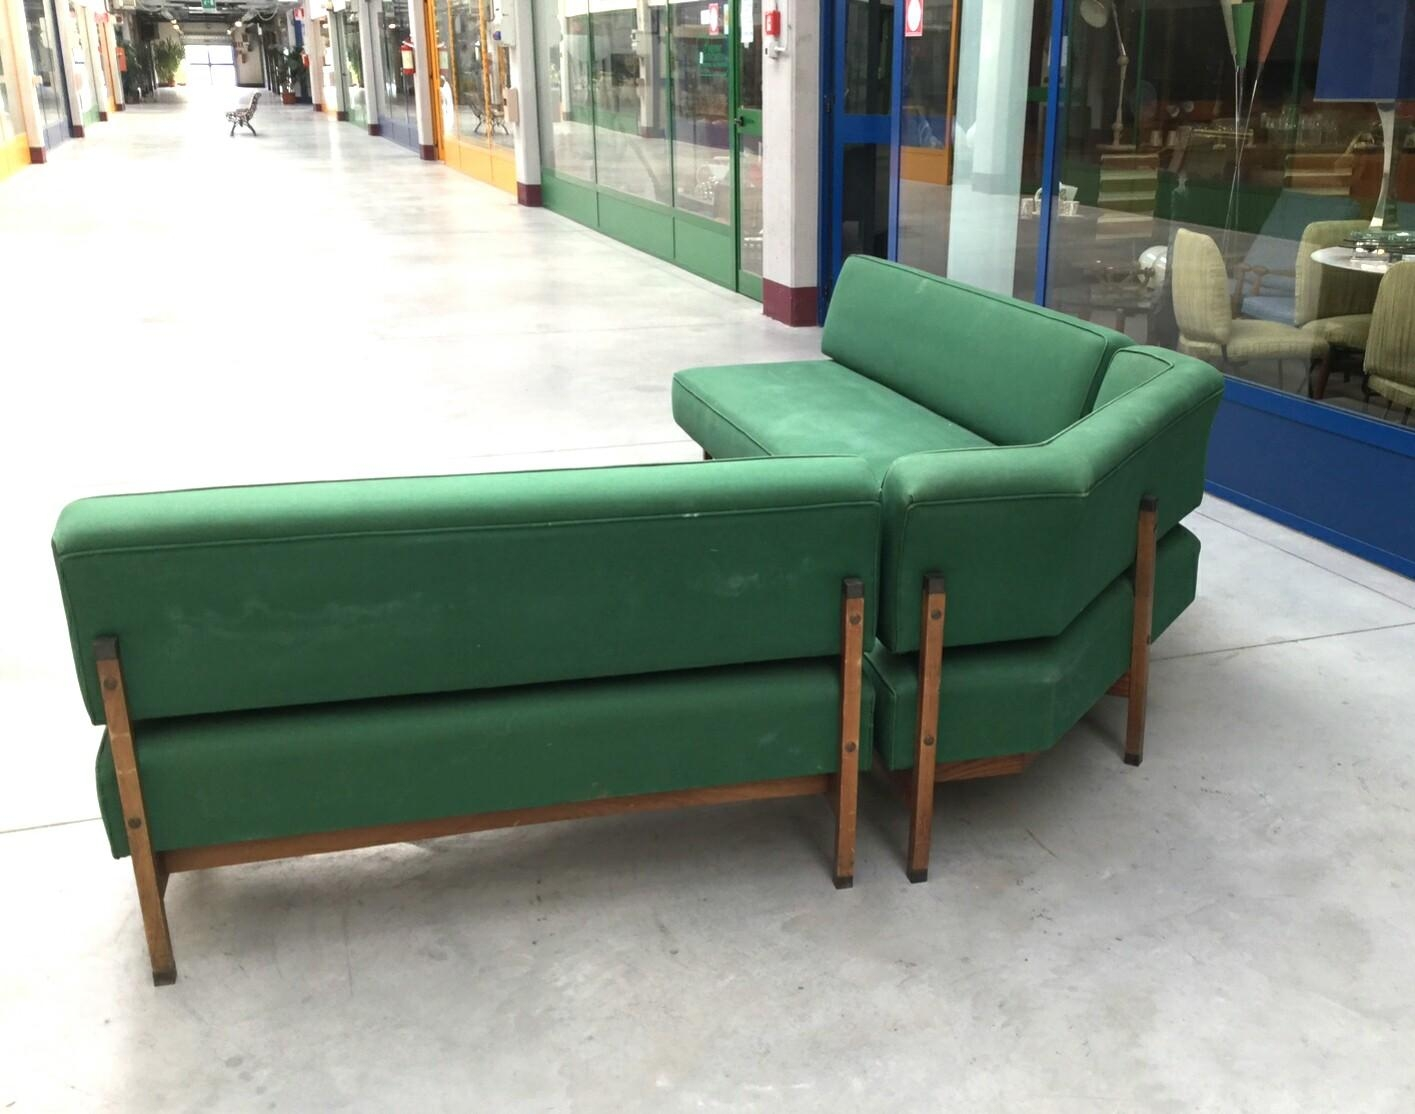 Mid Century Italian Green Modular Corner Sofa, 1960S For Sale At For Modular Corner Sofas (View 19 of 20)